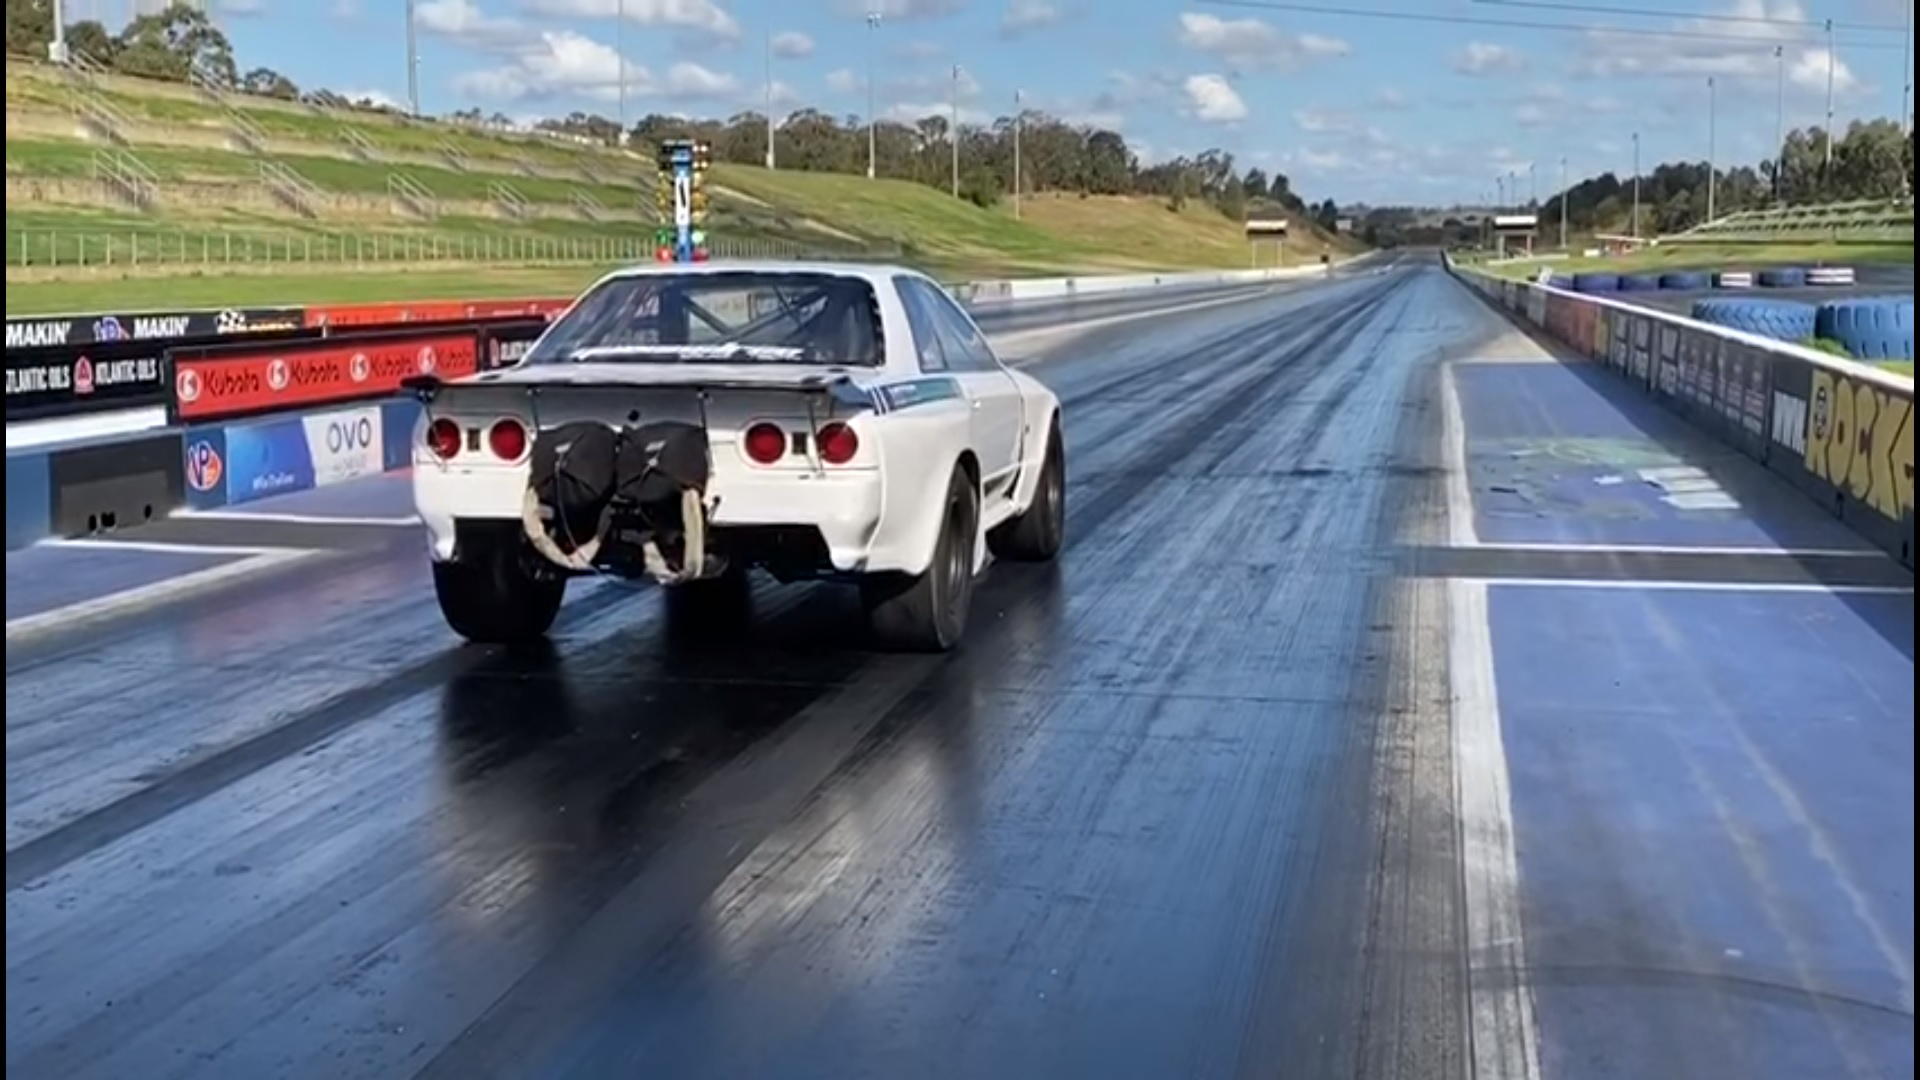 An R32 Nissan Skyline Just Became The Worlds Fastest Awd Vehicle With A Sub 7 Second Quarter Mile